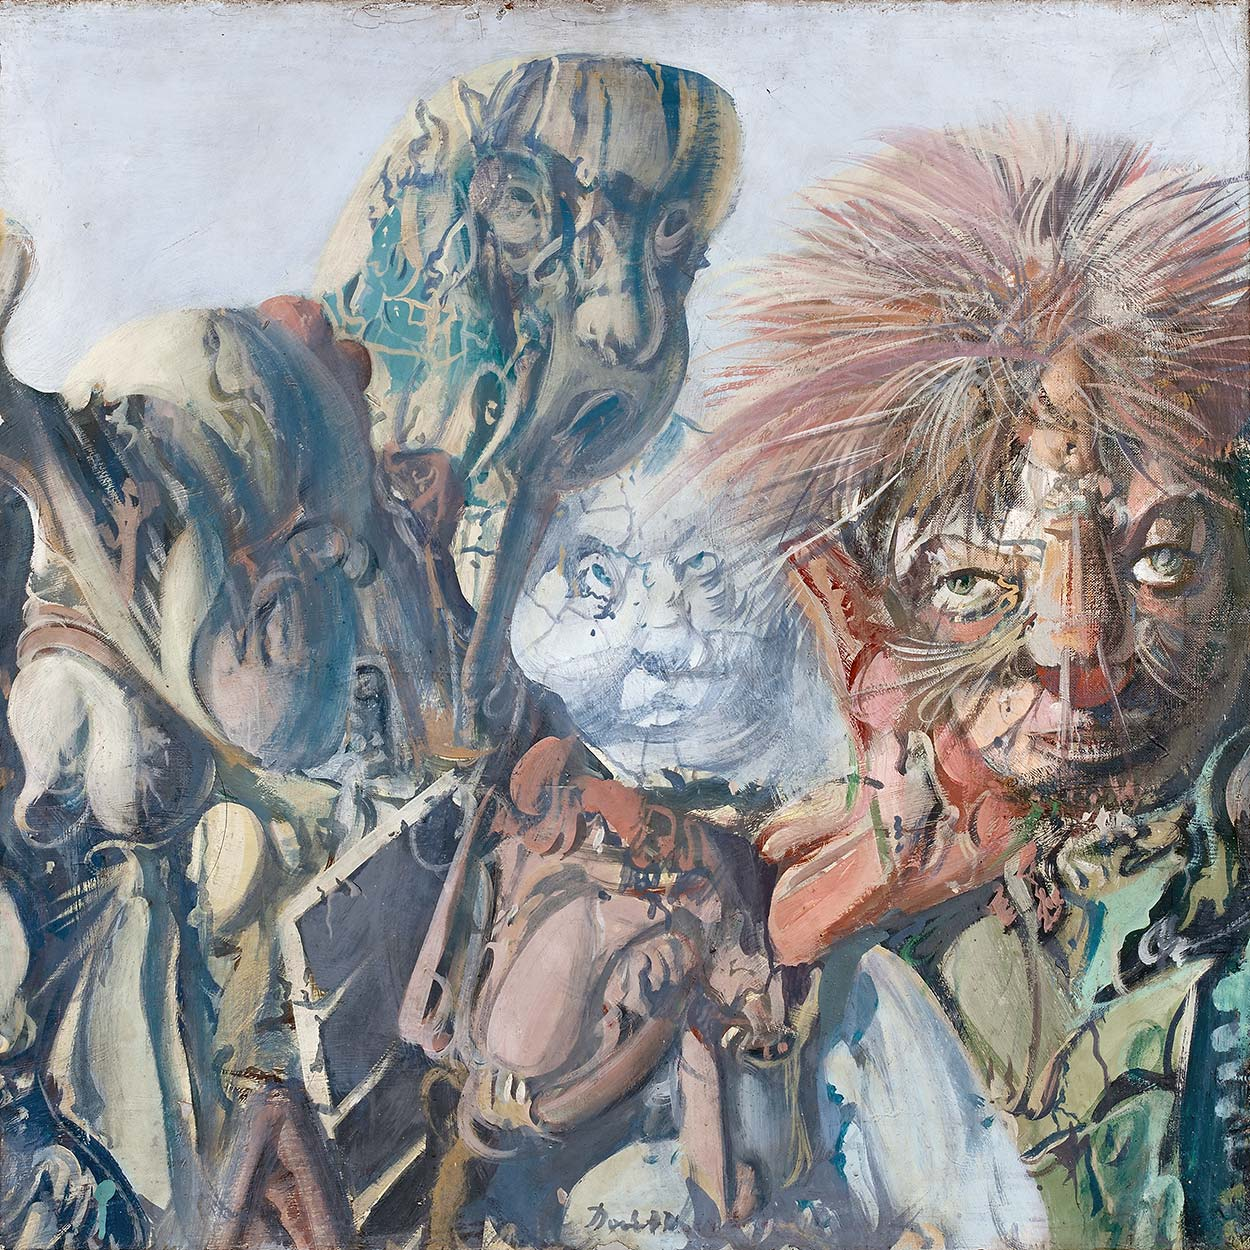 Dado's painting: The Gallery of Ancestors XV, 1970